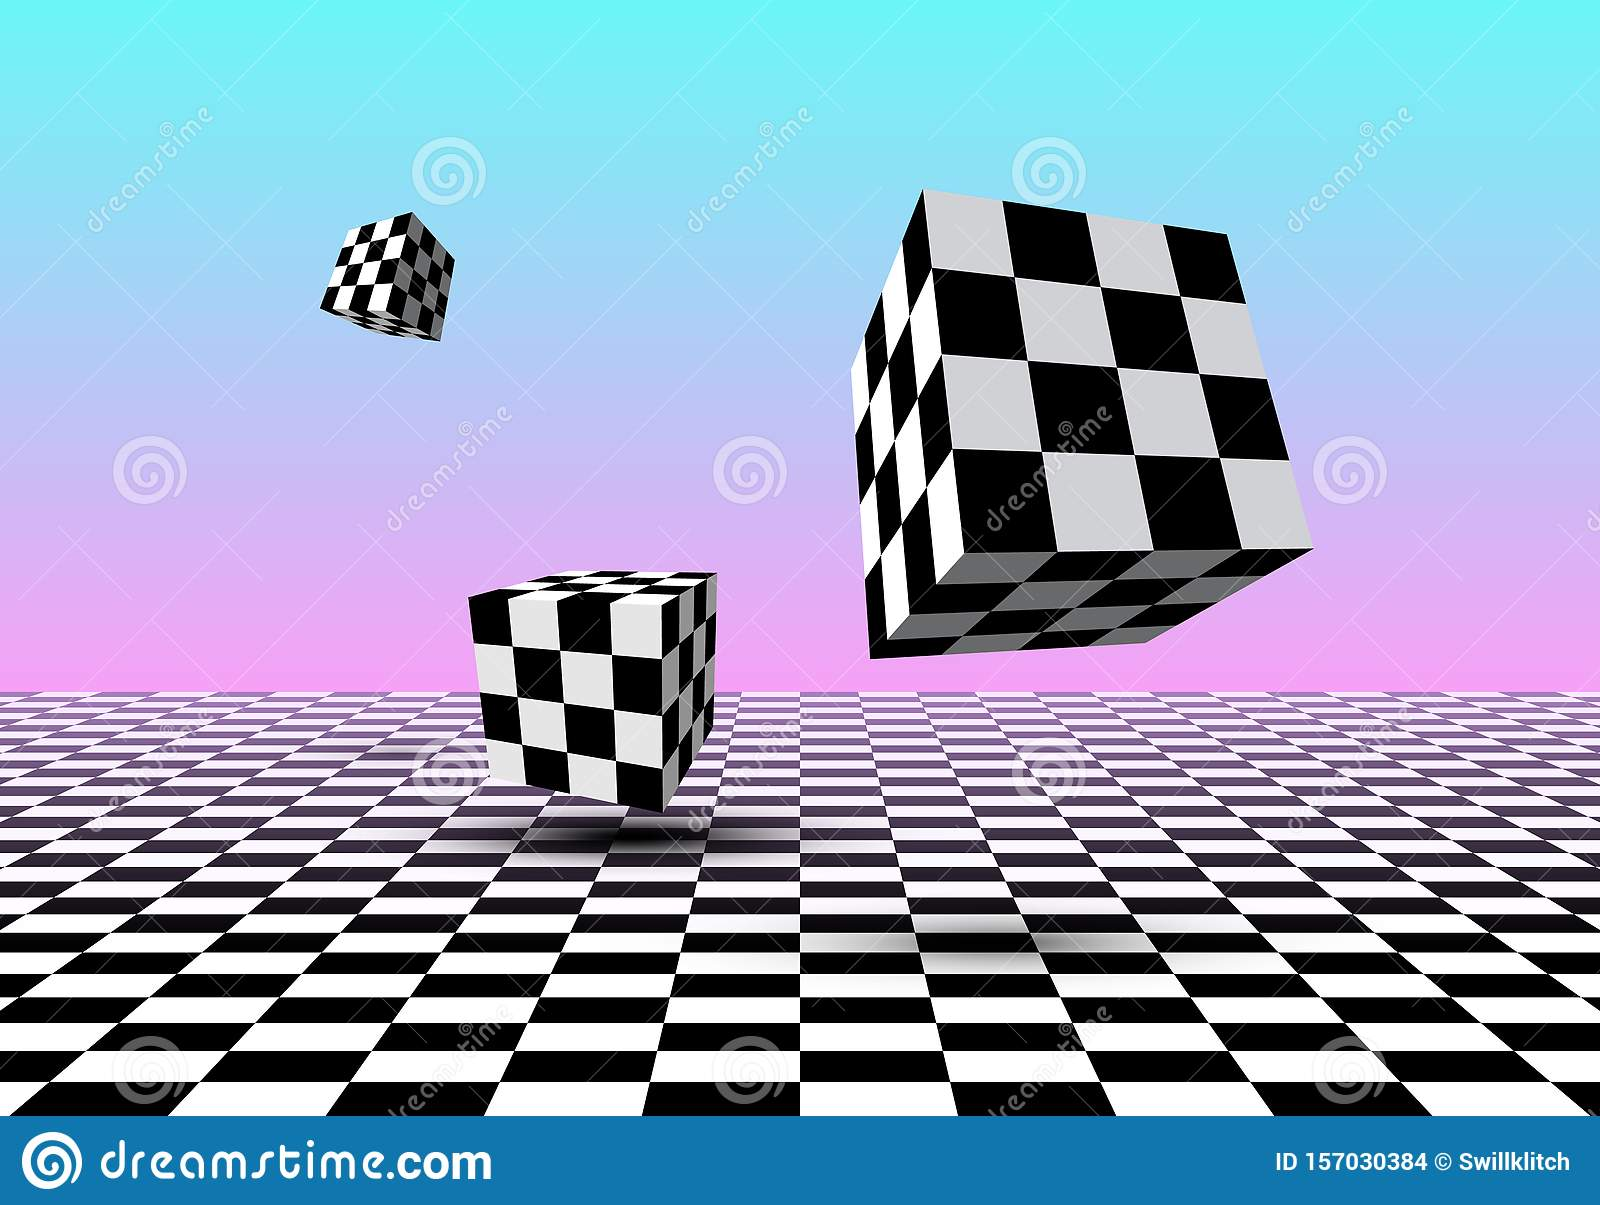 Black And White Cubes Flying Over Checkered Floor With Pink And